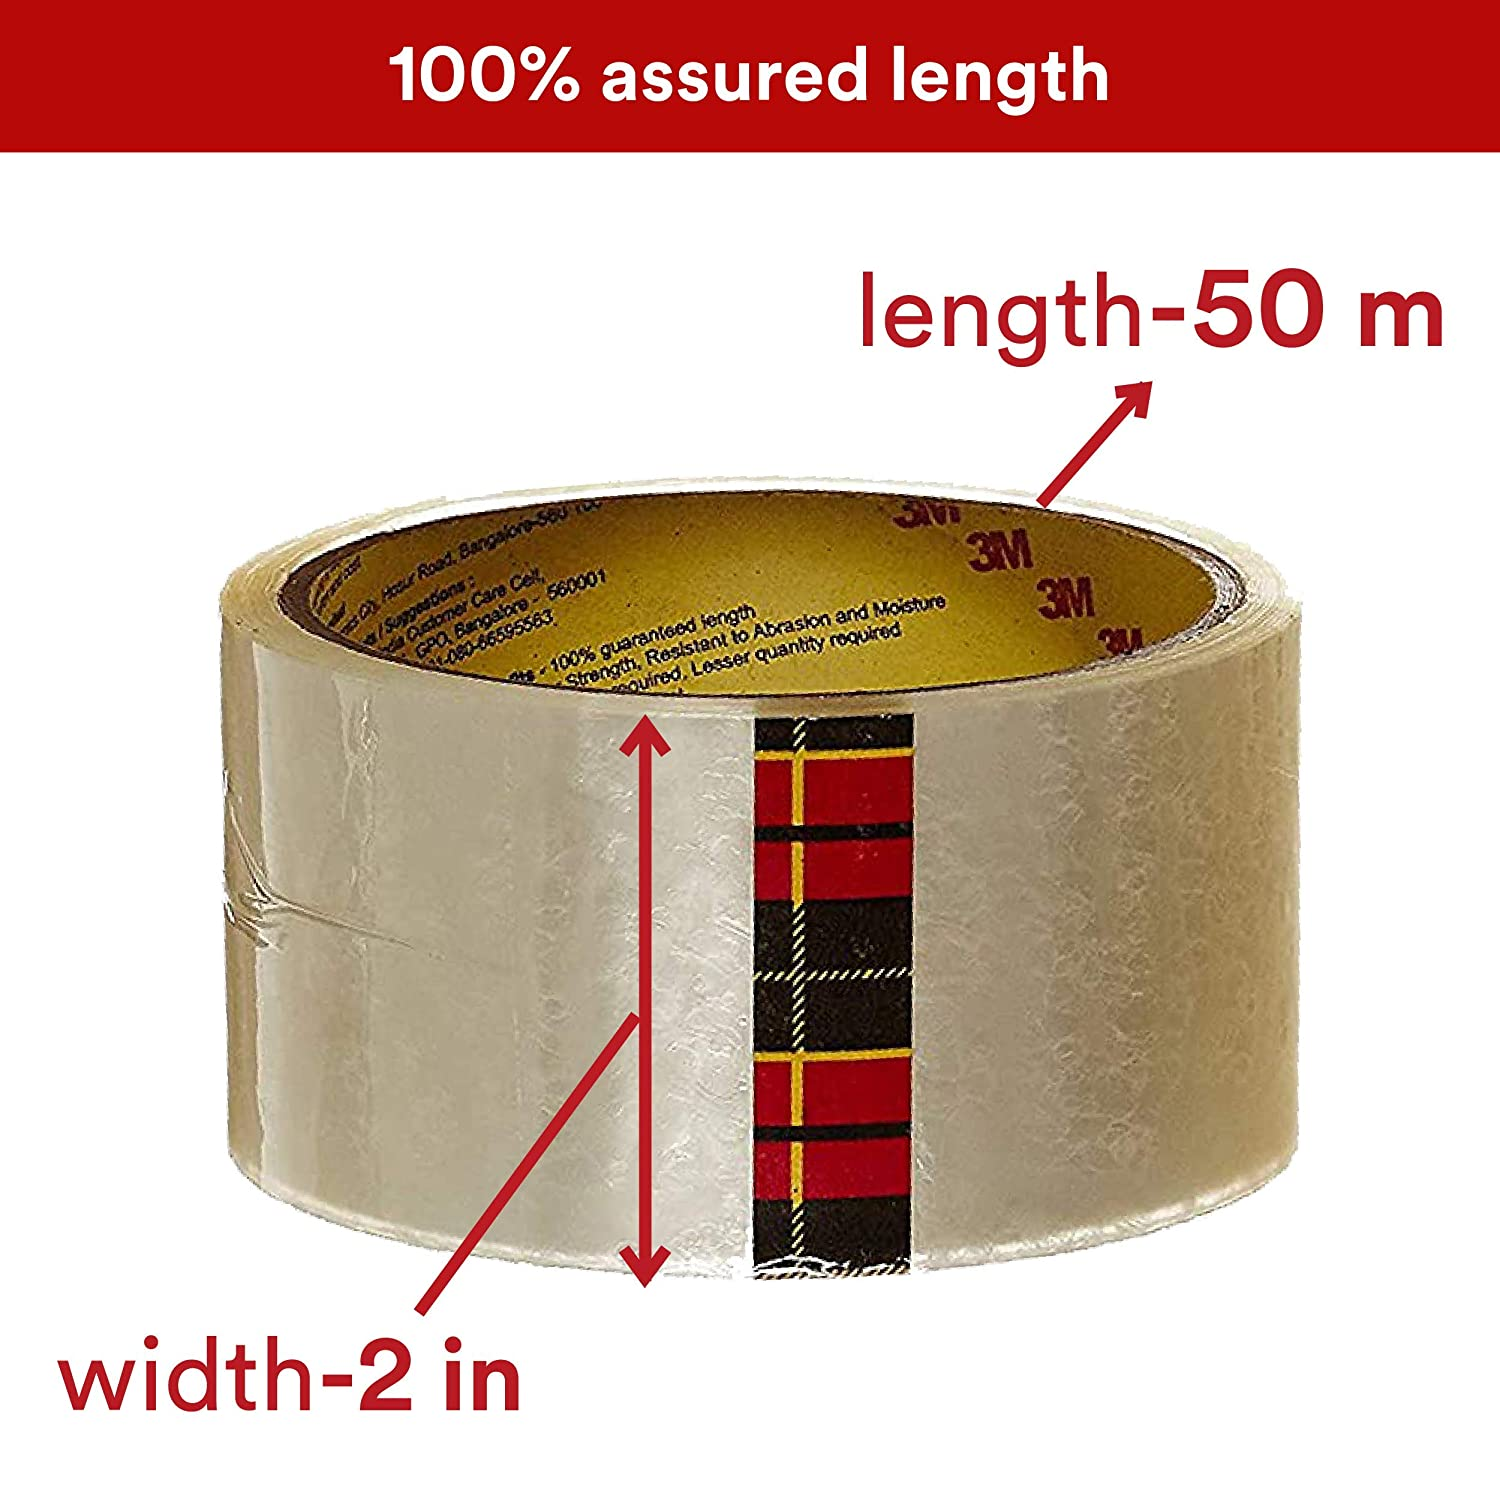 """Scotch Packing Tape 2""""x50m Clear (Pack of 1)"""